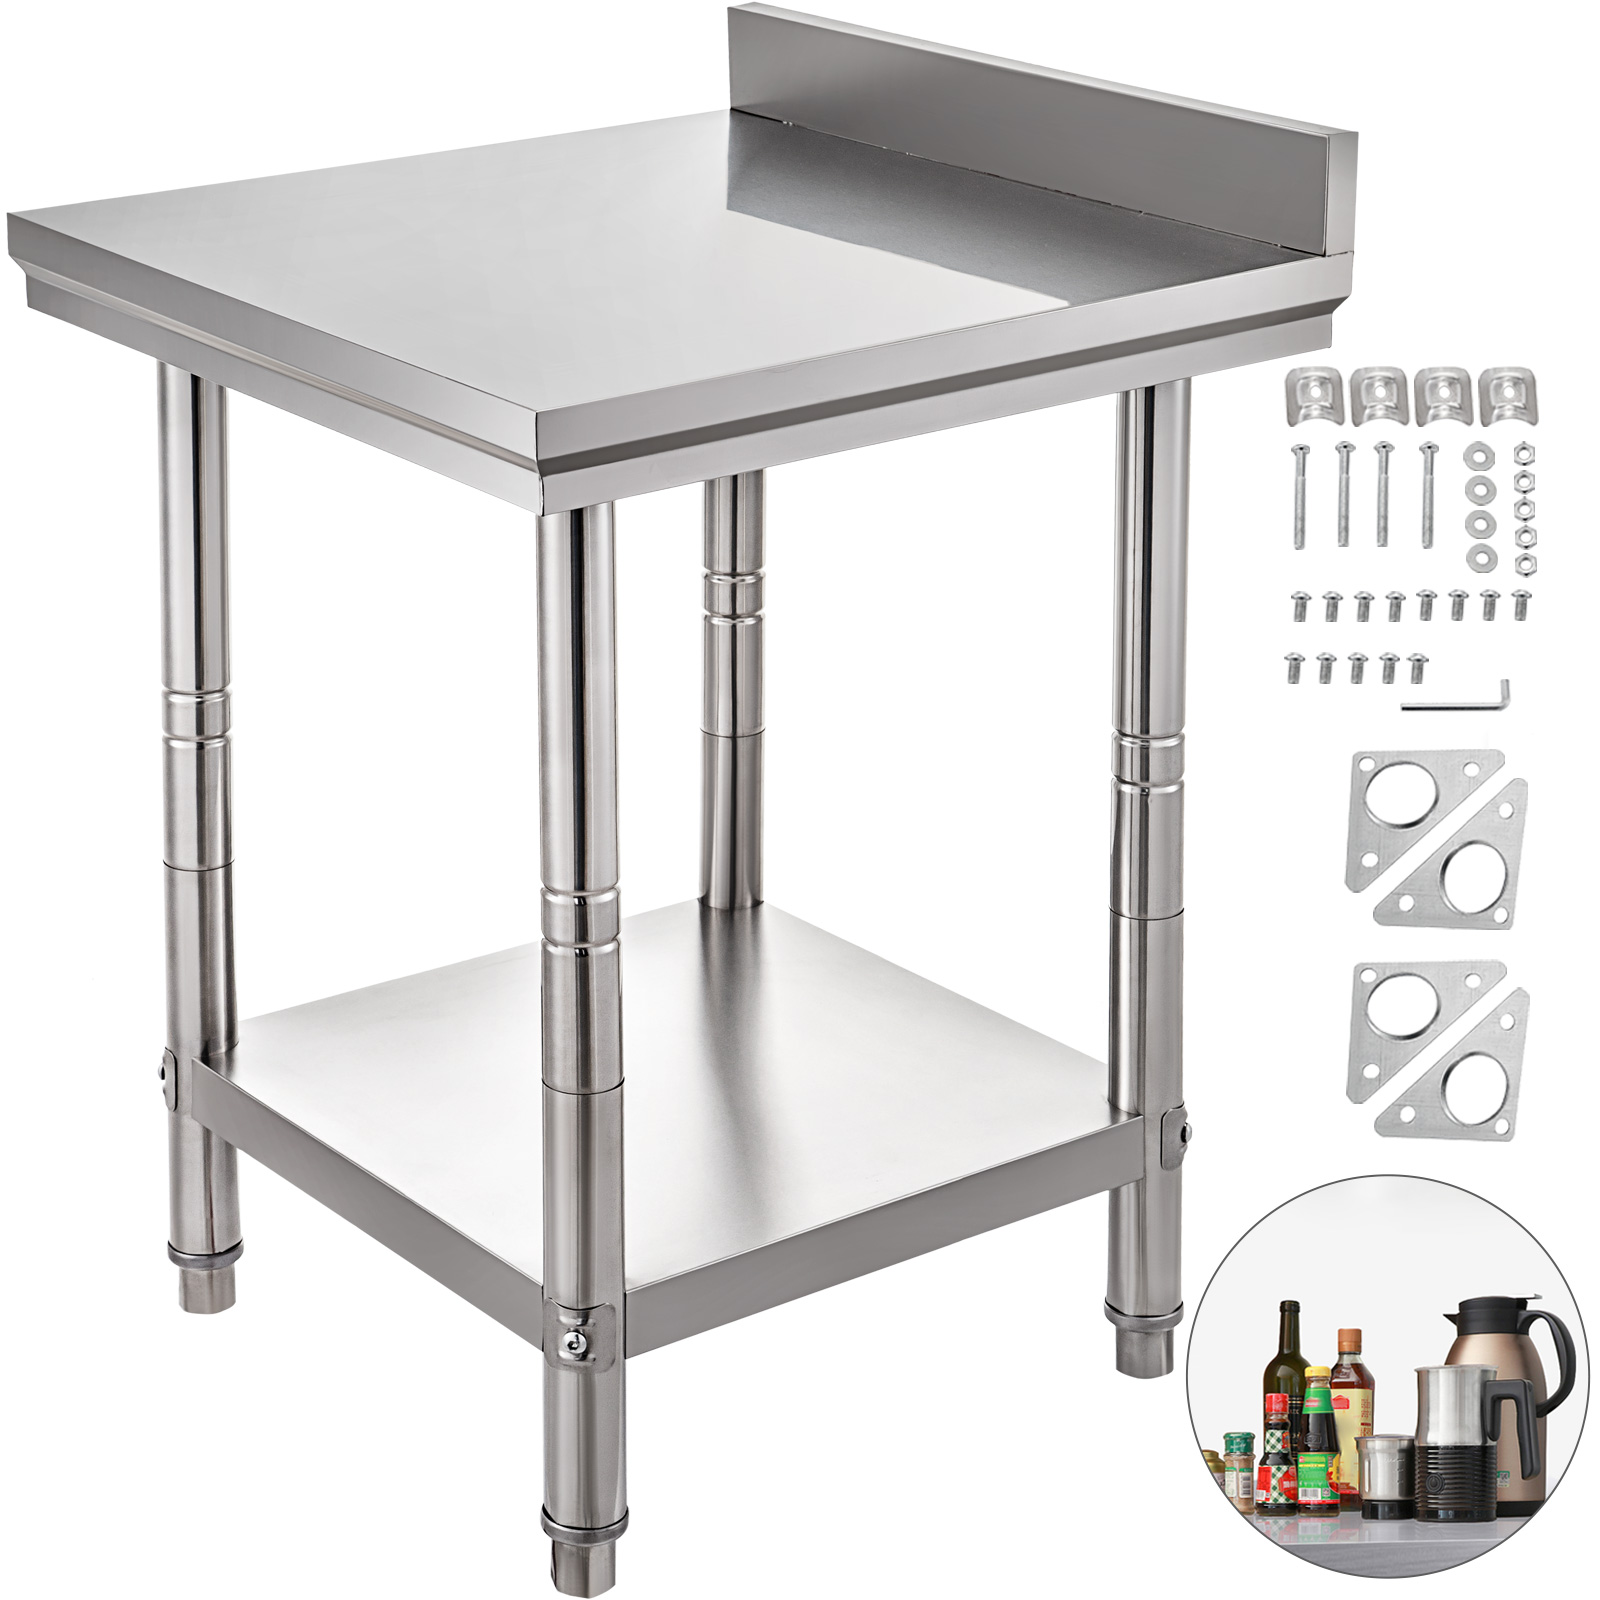 Details about  /30 x 48 In Stainless Steel Prep Work Table NSF Food Kitchen Commercial Durable